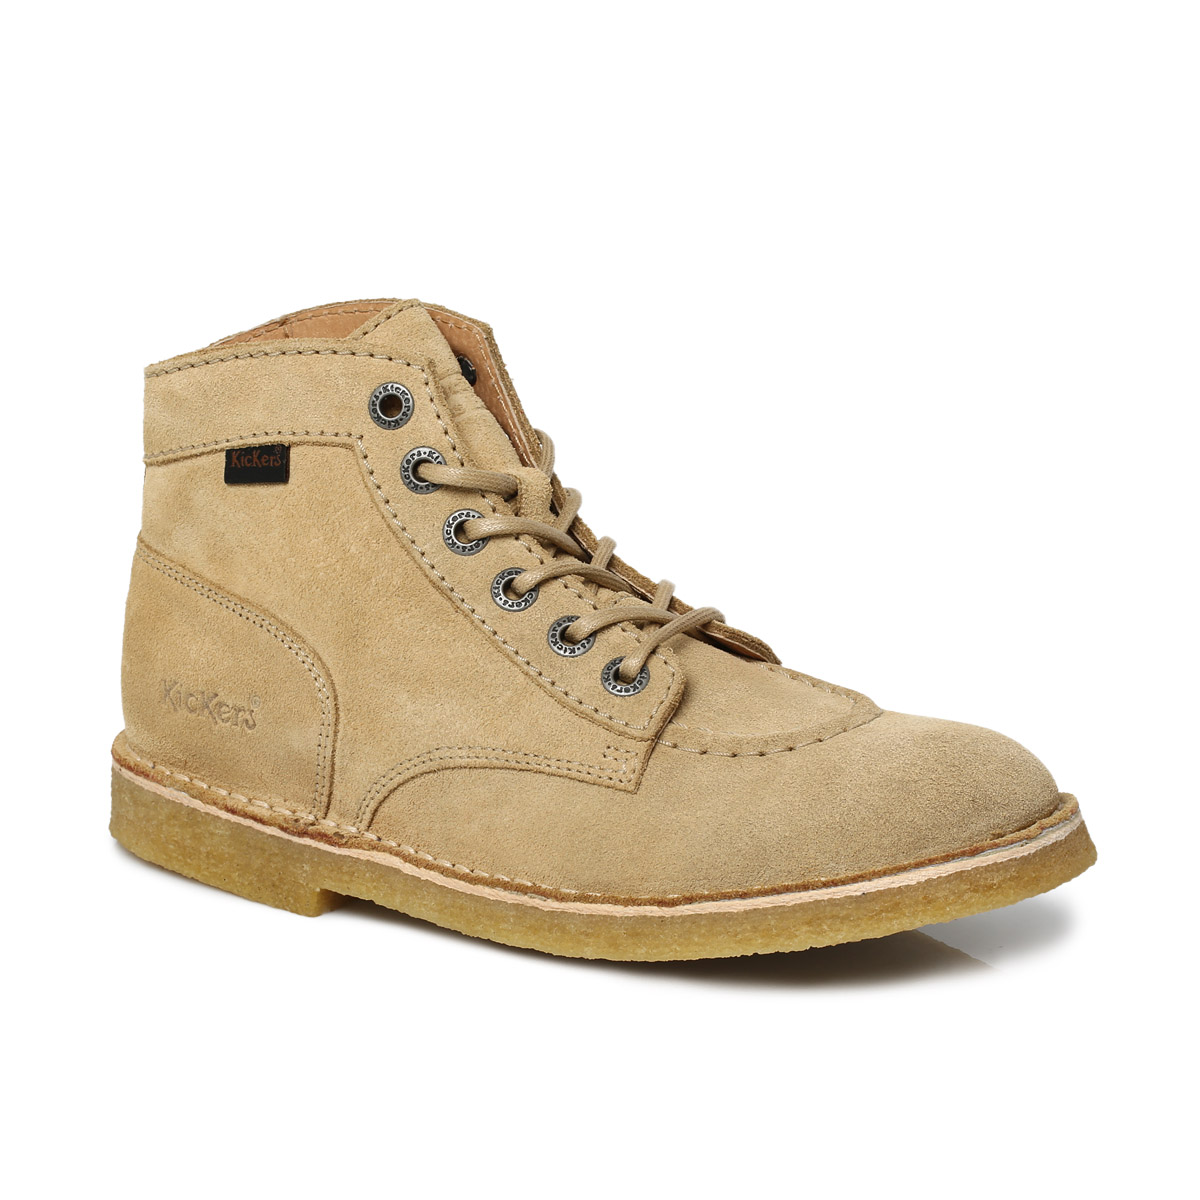 Kickers Beige Brown Kick Legend Suede Mens Ankle High Boots Shoes Size 7-11 | EBay